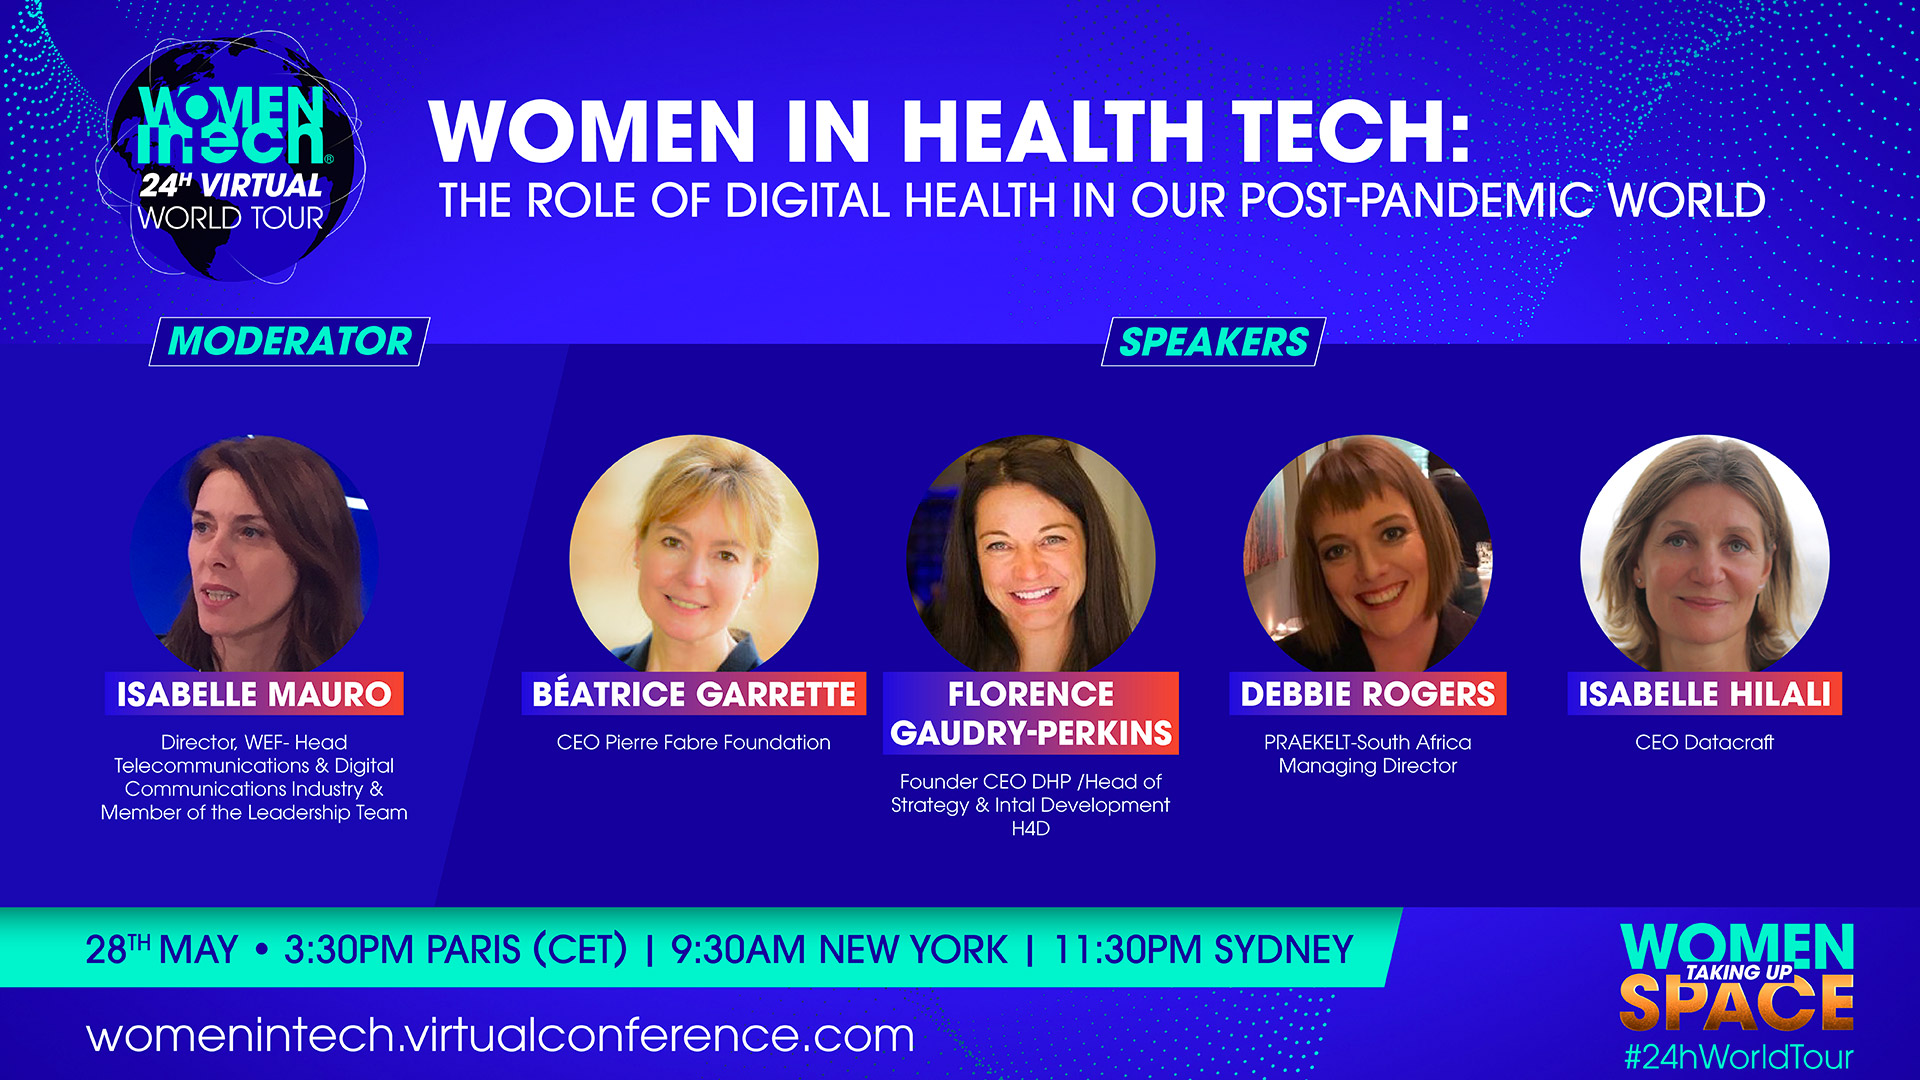 """Women in Health Tech """"the role of digital health in our post-pandemic world"""""""